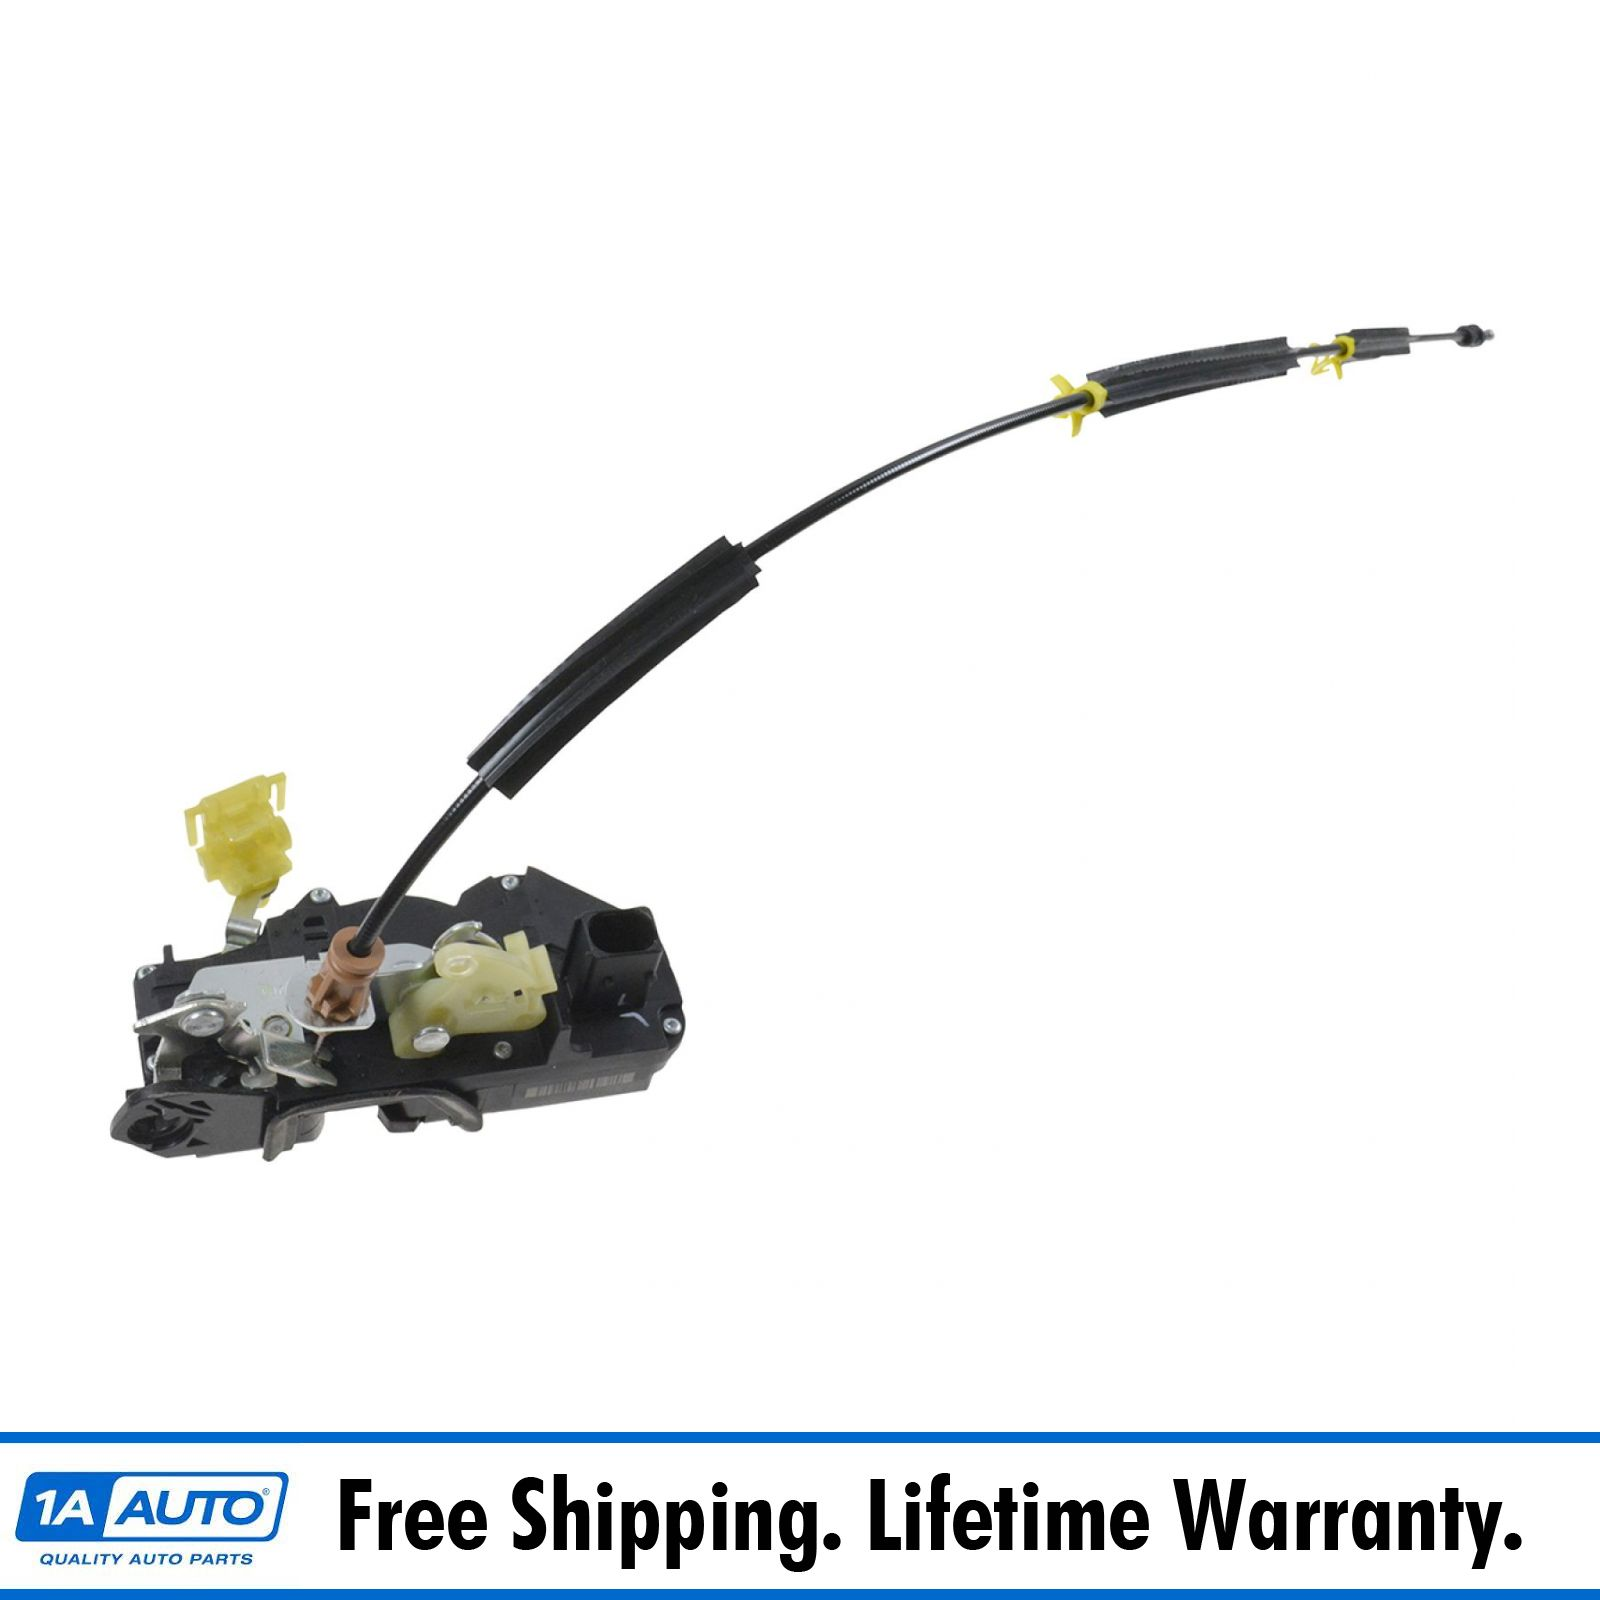 Details about OEM 25876387 Power Door Lock Actuator Latch Front Right for  Chevy GMC Cadillac